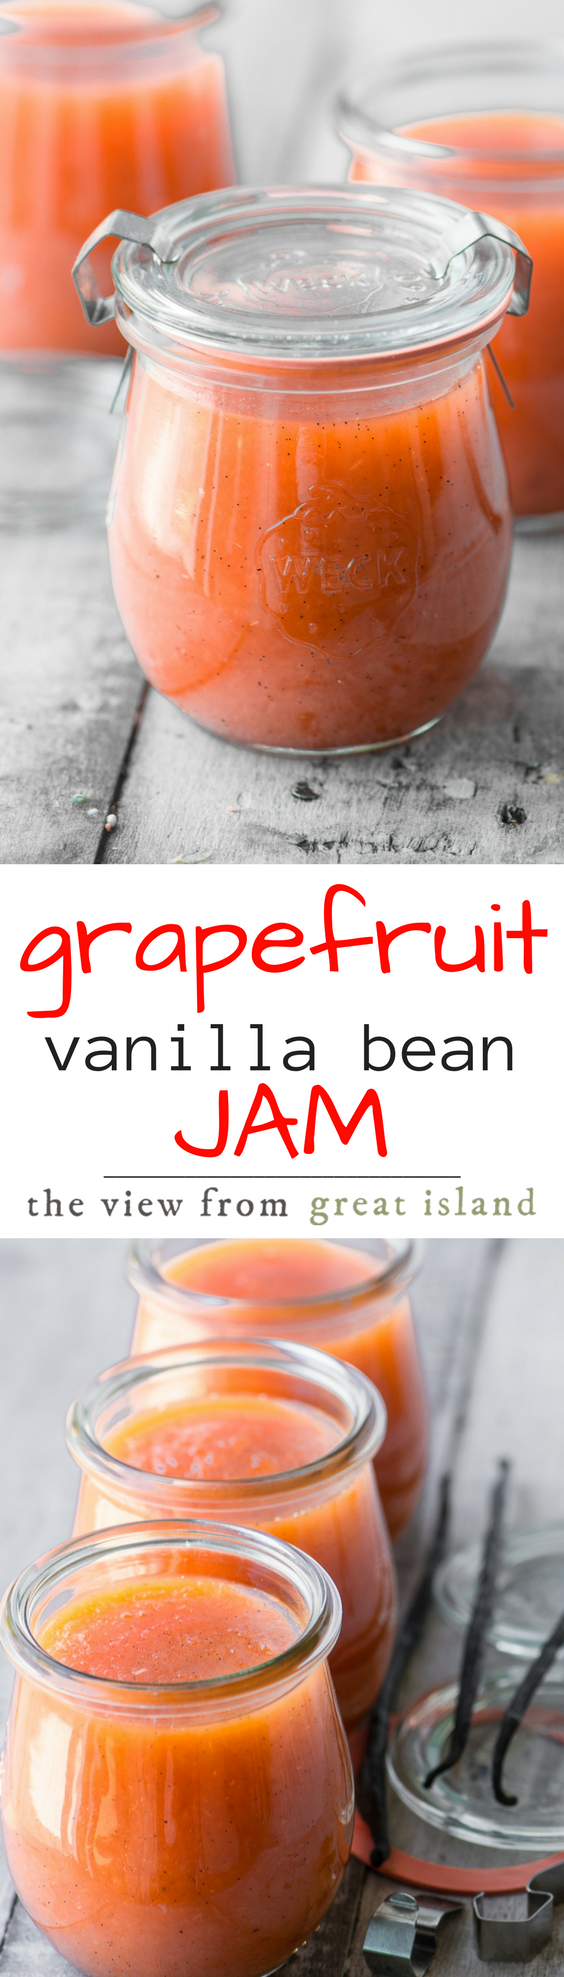 Pink Grapefruit and Vanilla Bean Jam ~ this small batch vanilla scented grapefruit jam is unforgettable! #jam #citrus #grapefruit #breakfast #marmalade #pinkgrapfruit #brunch #scones #toast #jelly #preserves #vanillabean #easy #recipe #nocan #smallbatch #refrigerator